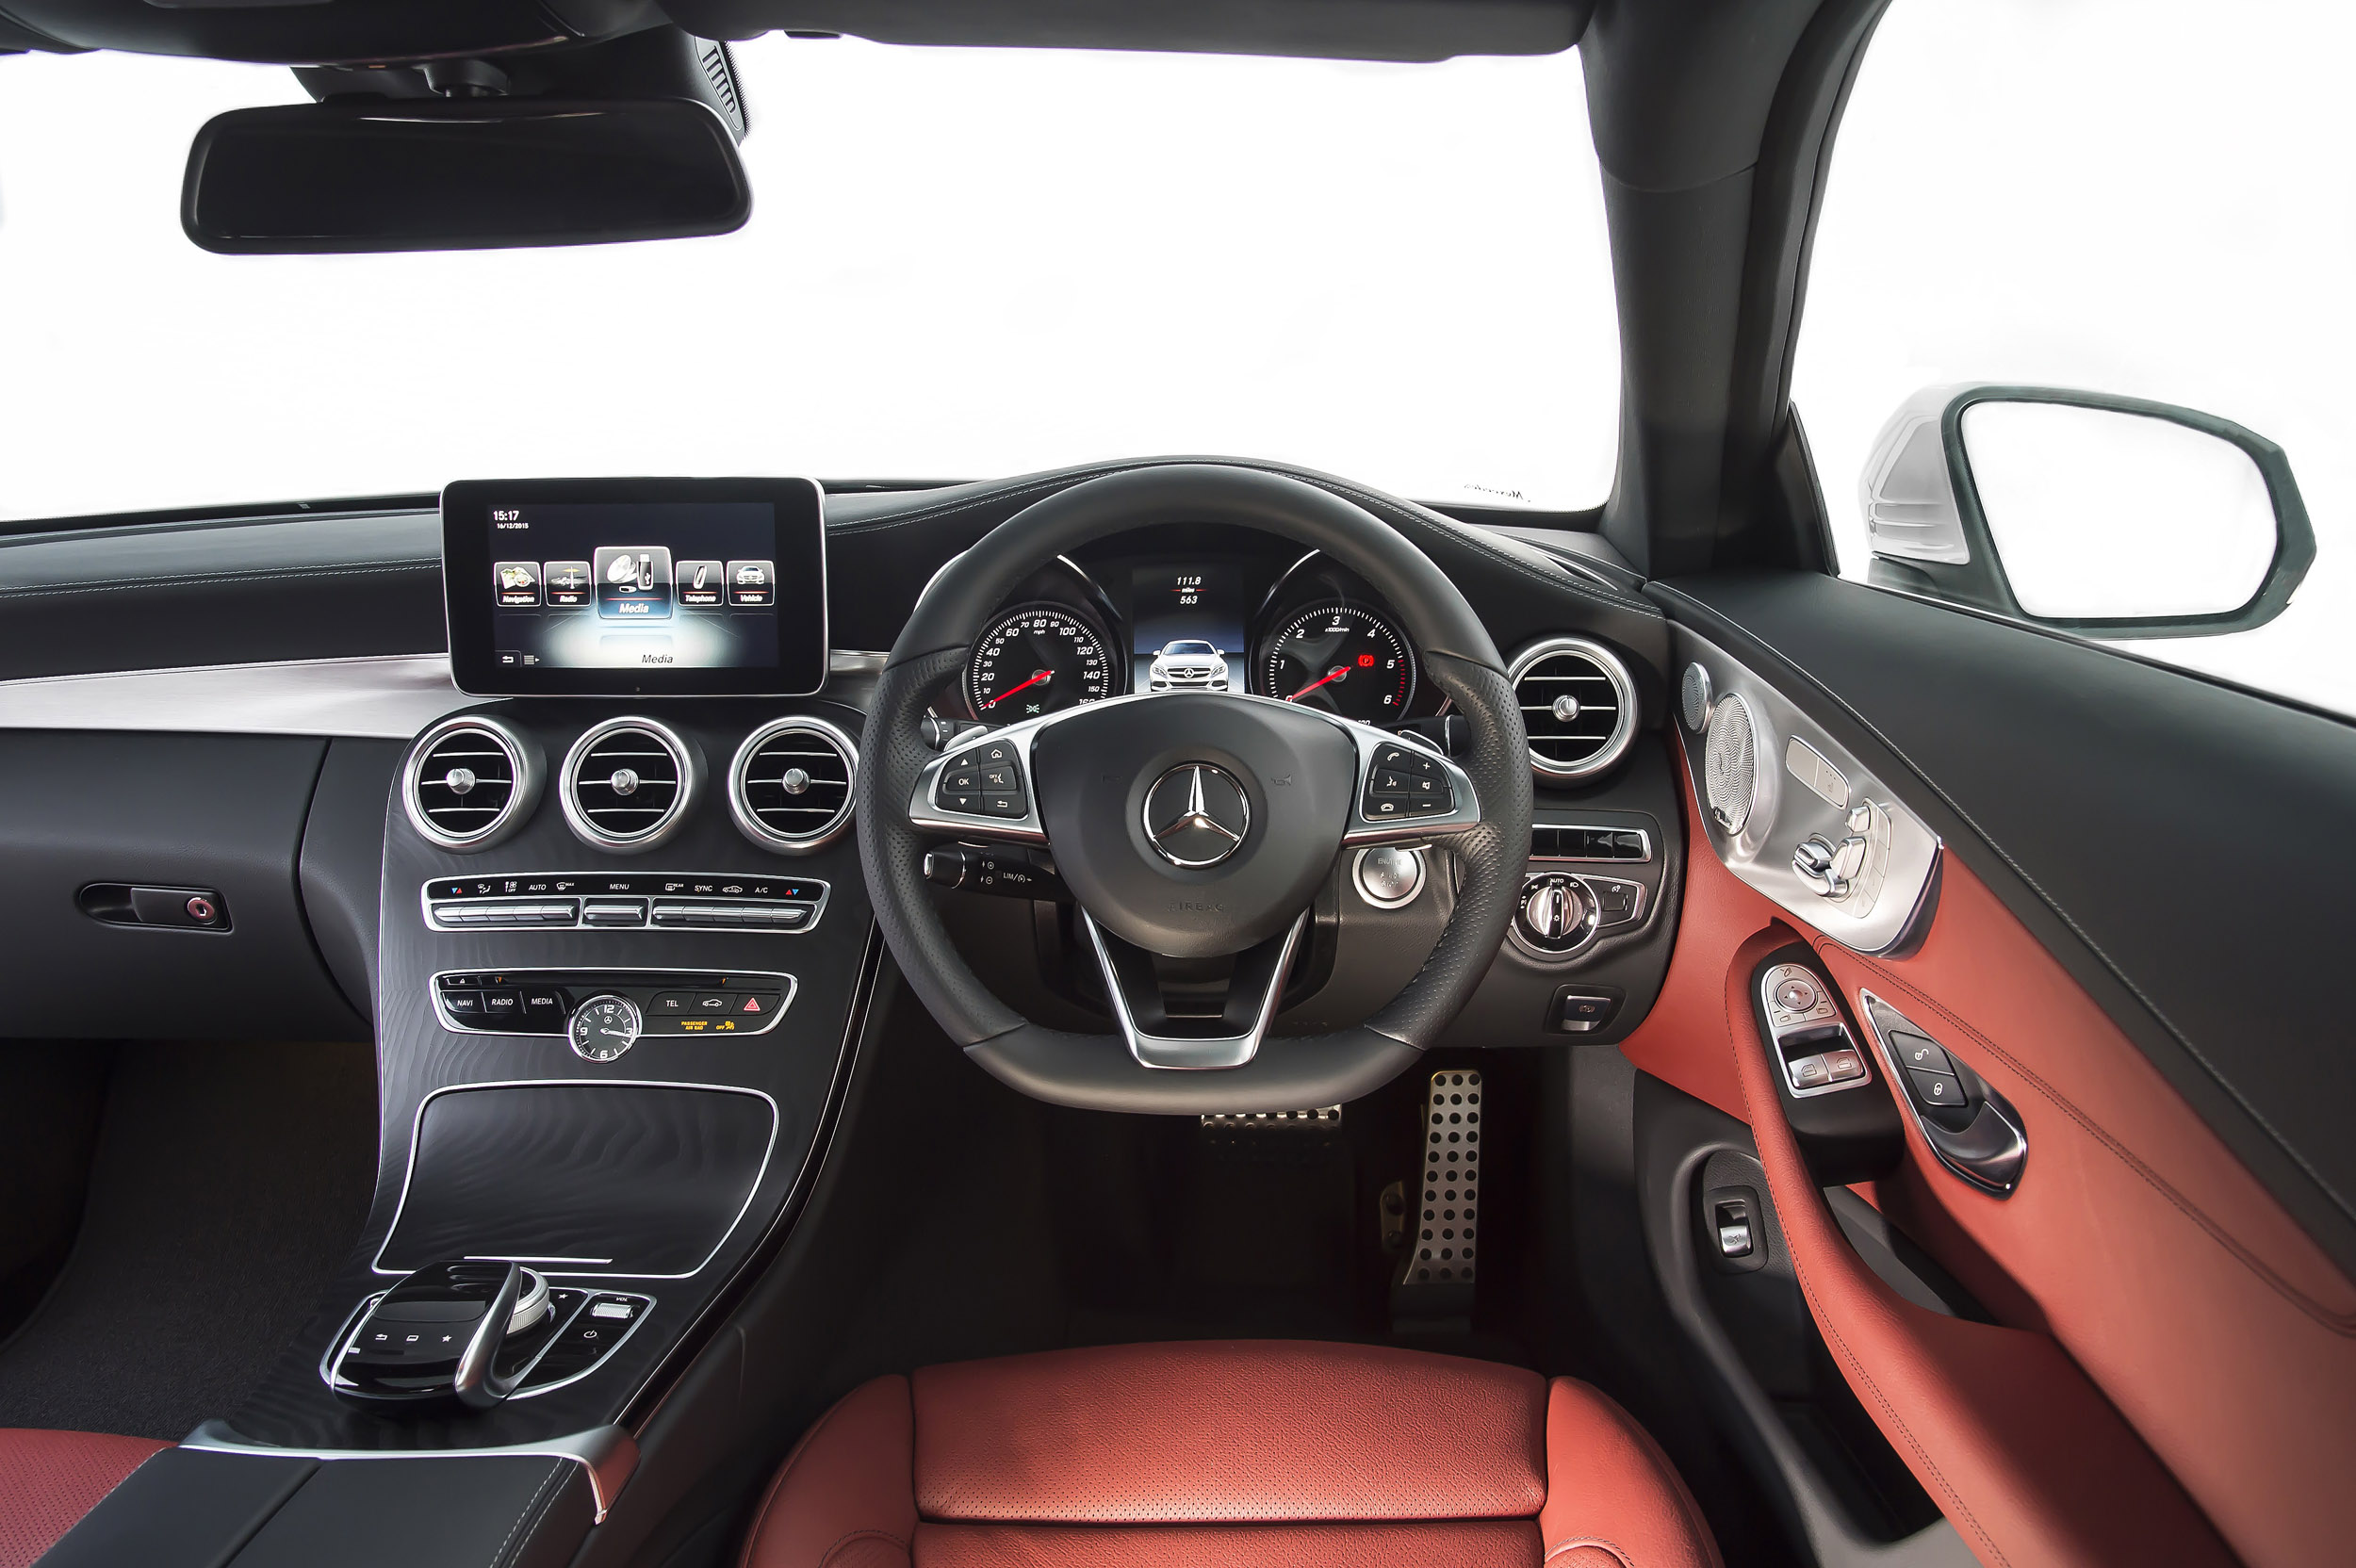 Mercedes Benz C250d Coupe Review Prices Specs And 0 60 Time Evo